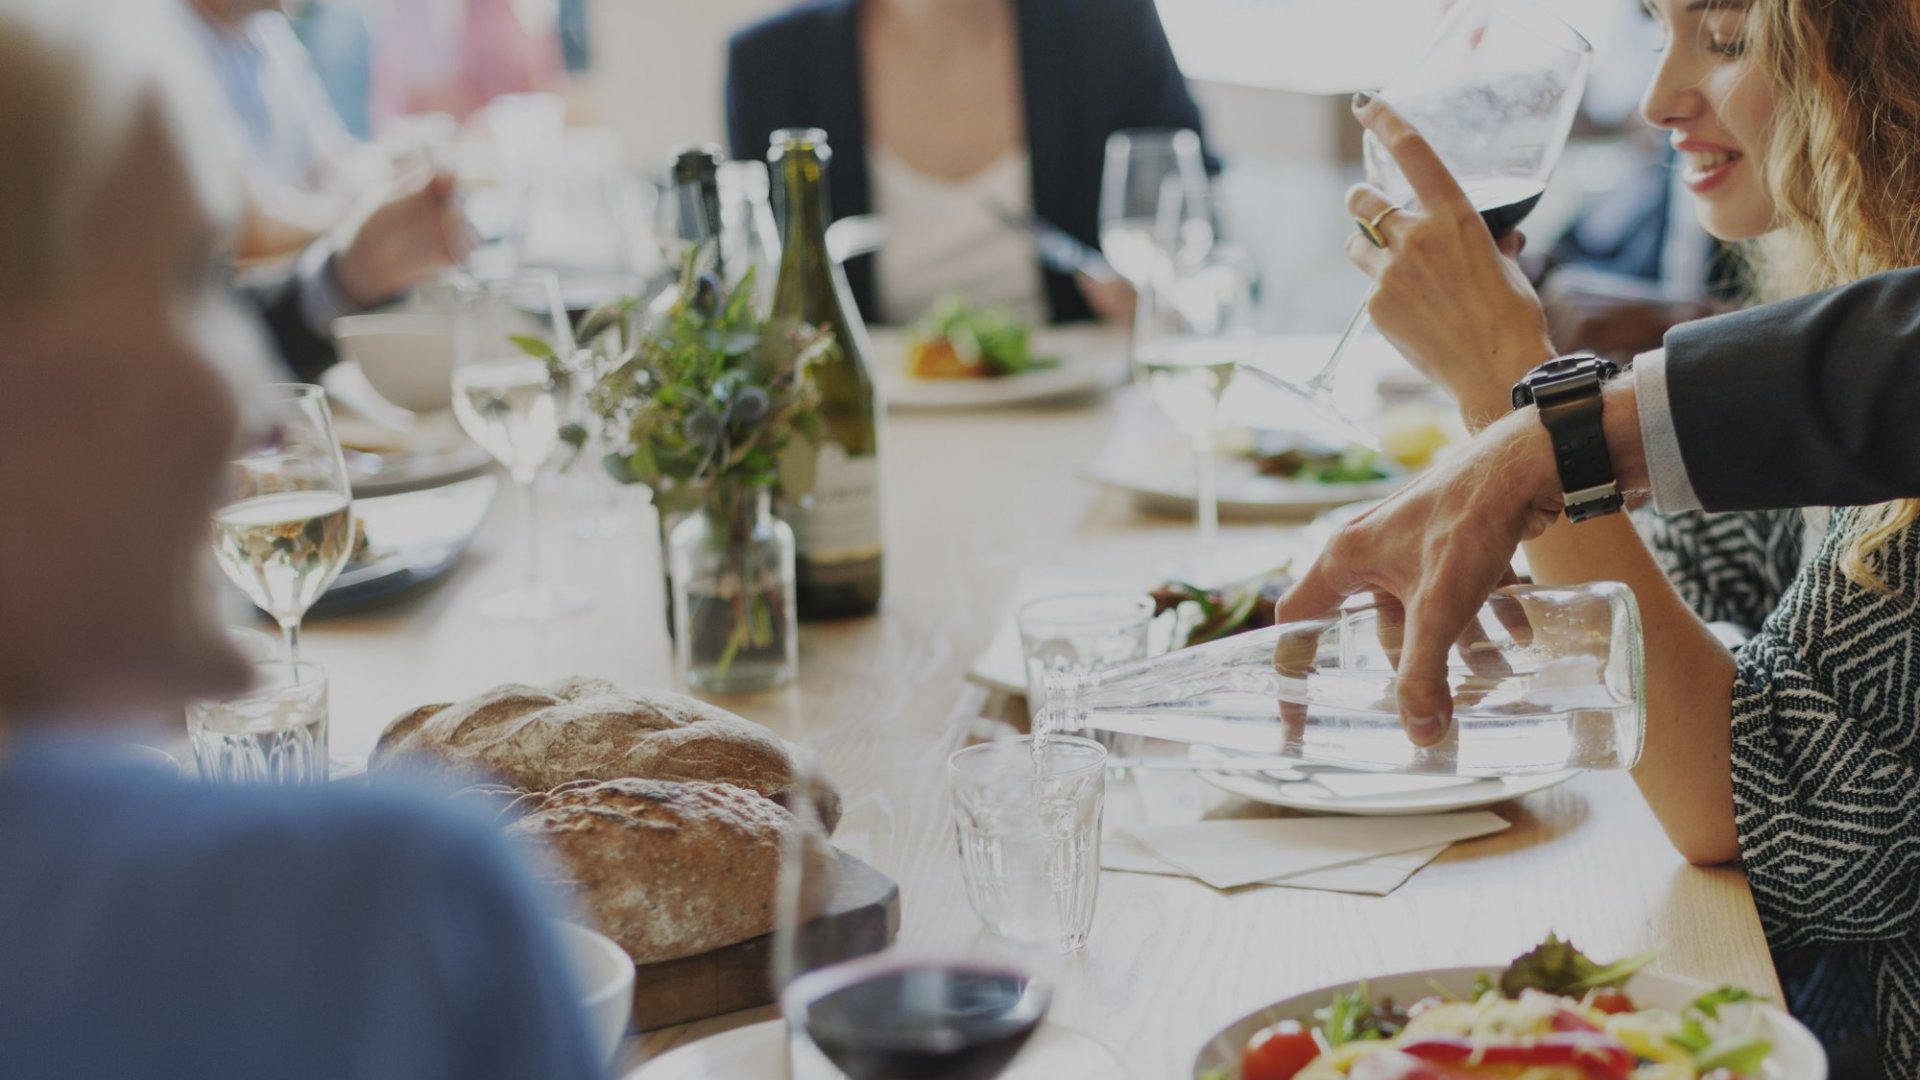 9 Ways to Make Networking Dinners Anything But Boring